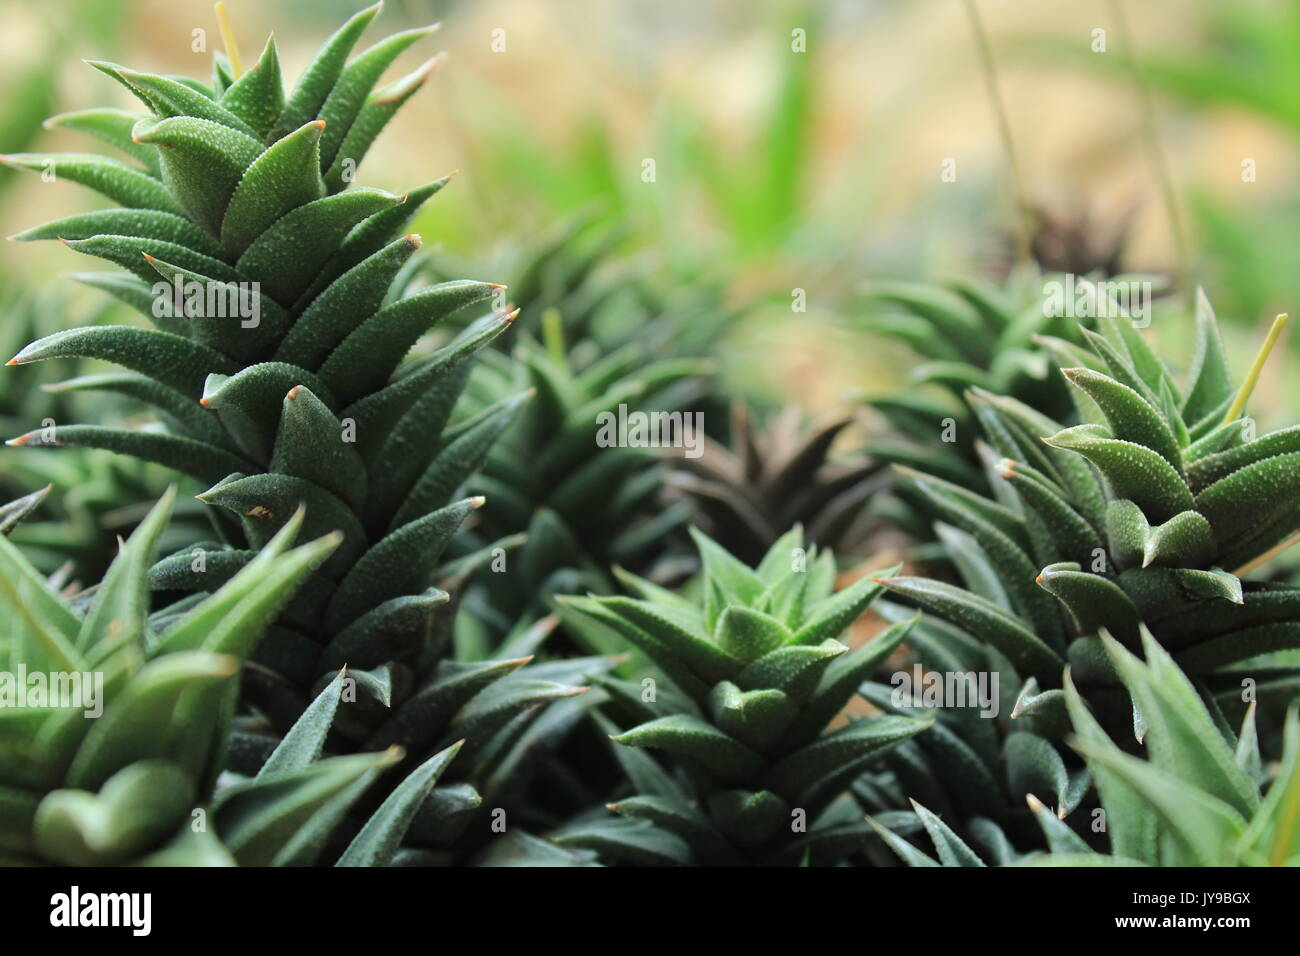 Some succulents illuminated by the sun - Stock Image